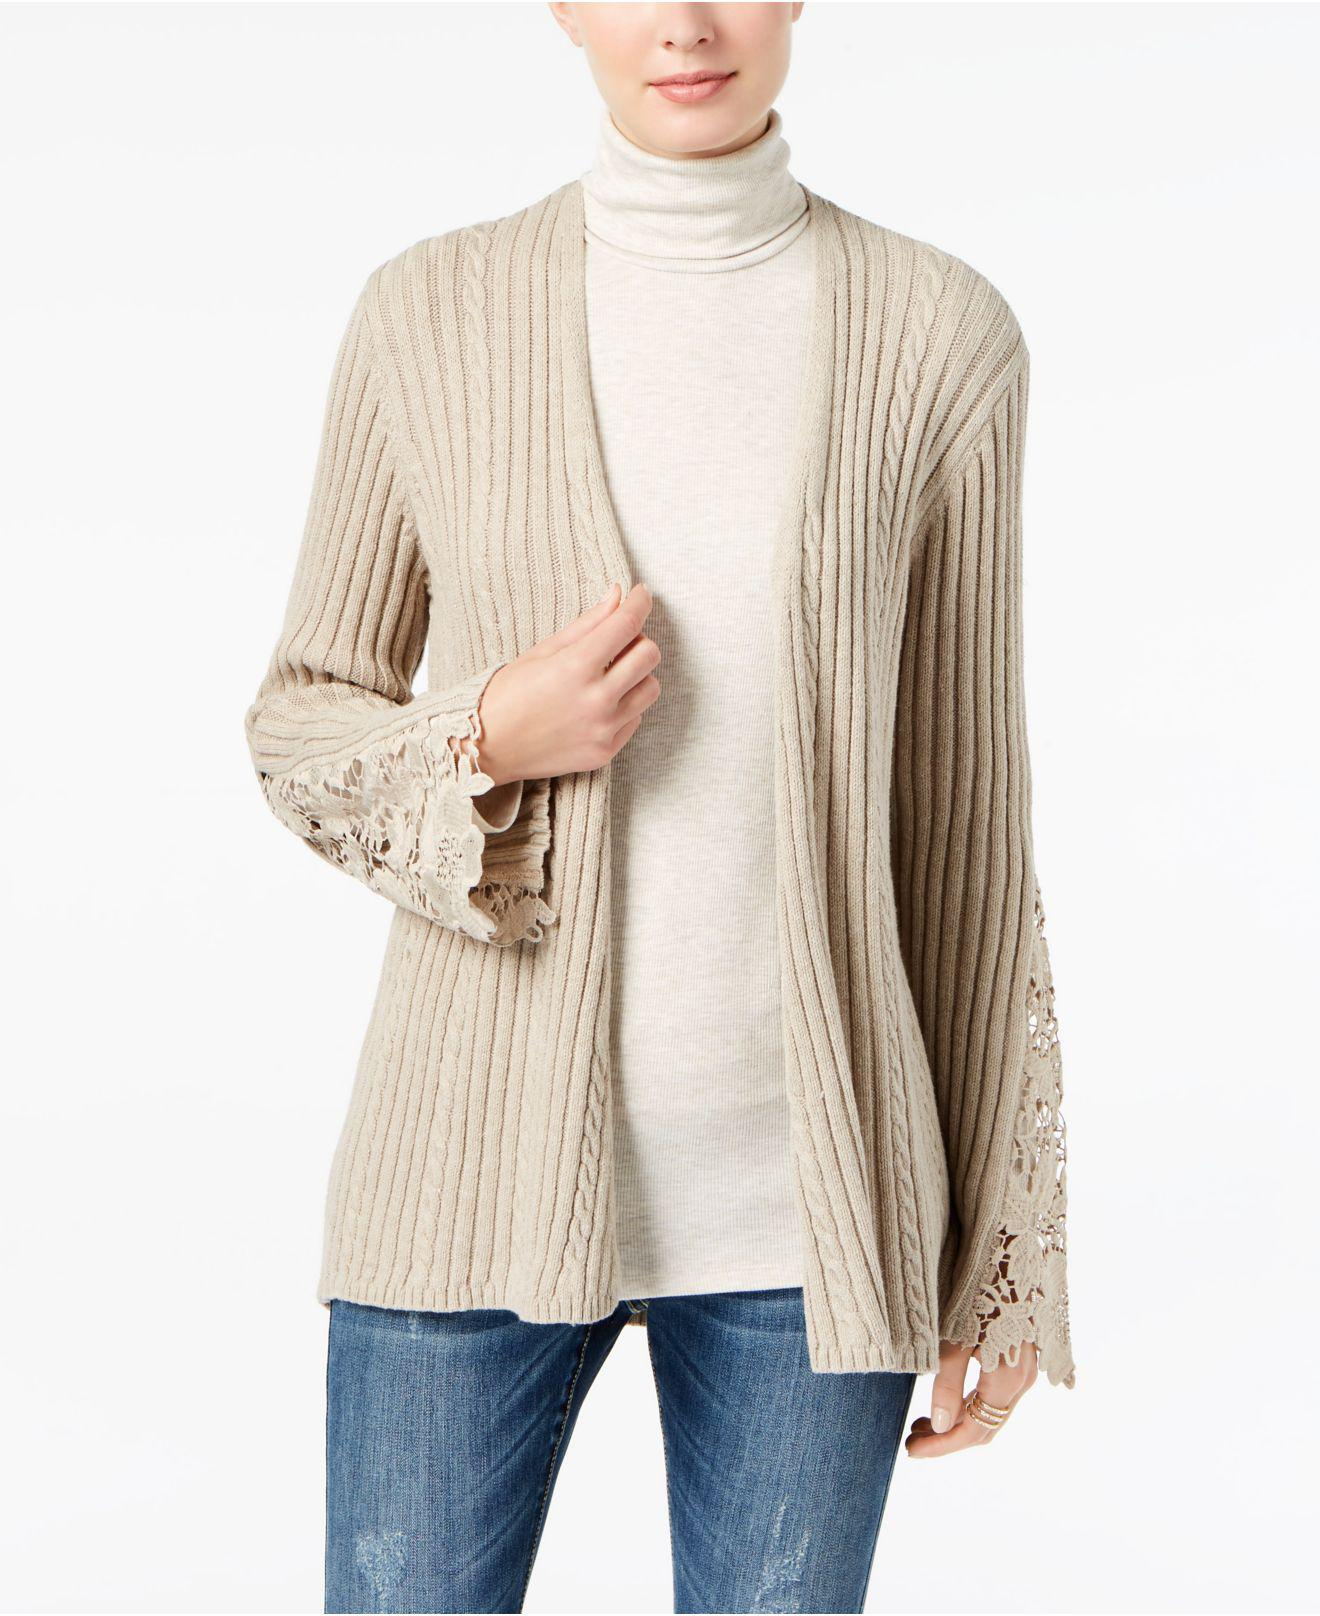 Inc international concepts Ribbed Crochet-lace Cardigan in Natural ...